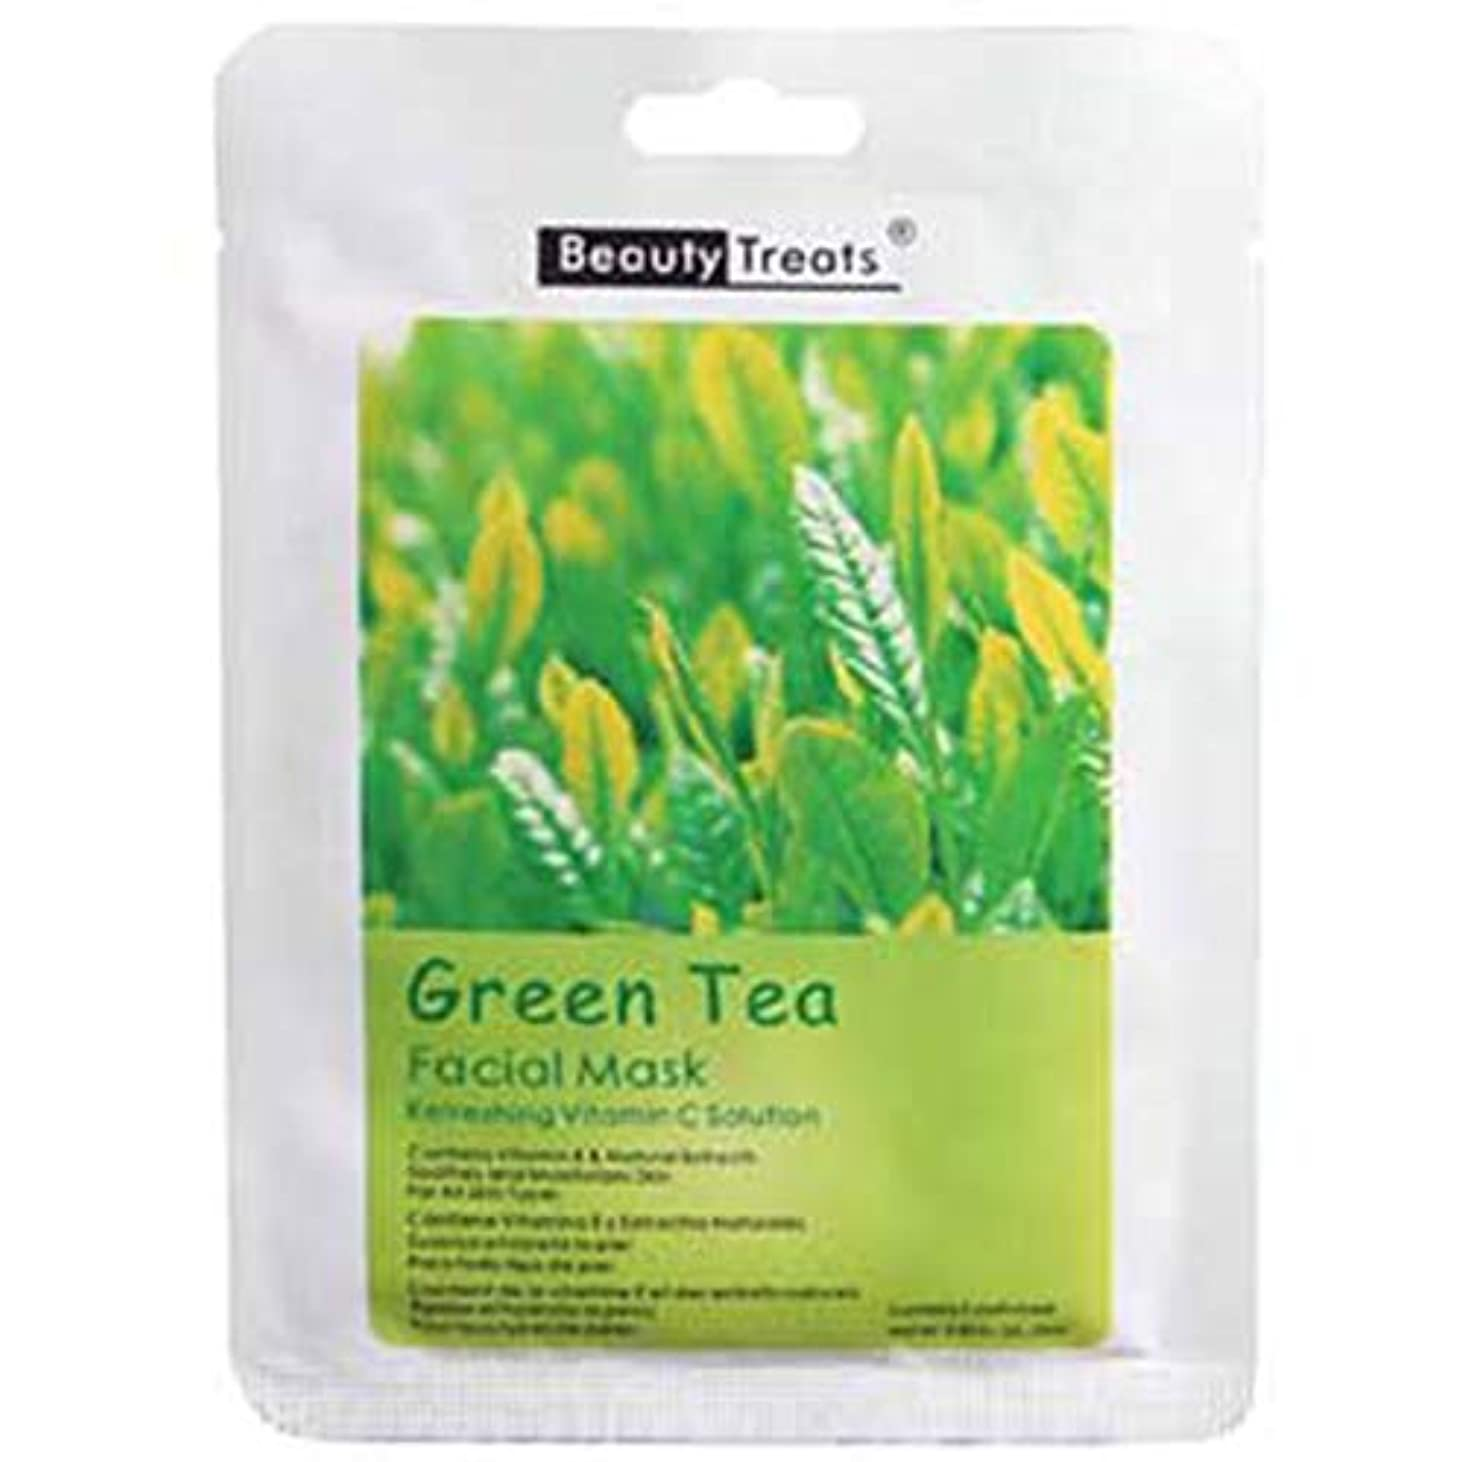 時刻表季節オーディションBEAUTY TREATS Facial Mask Refreshing Vitamin C Solution - Green Tea (並行輸入品)